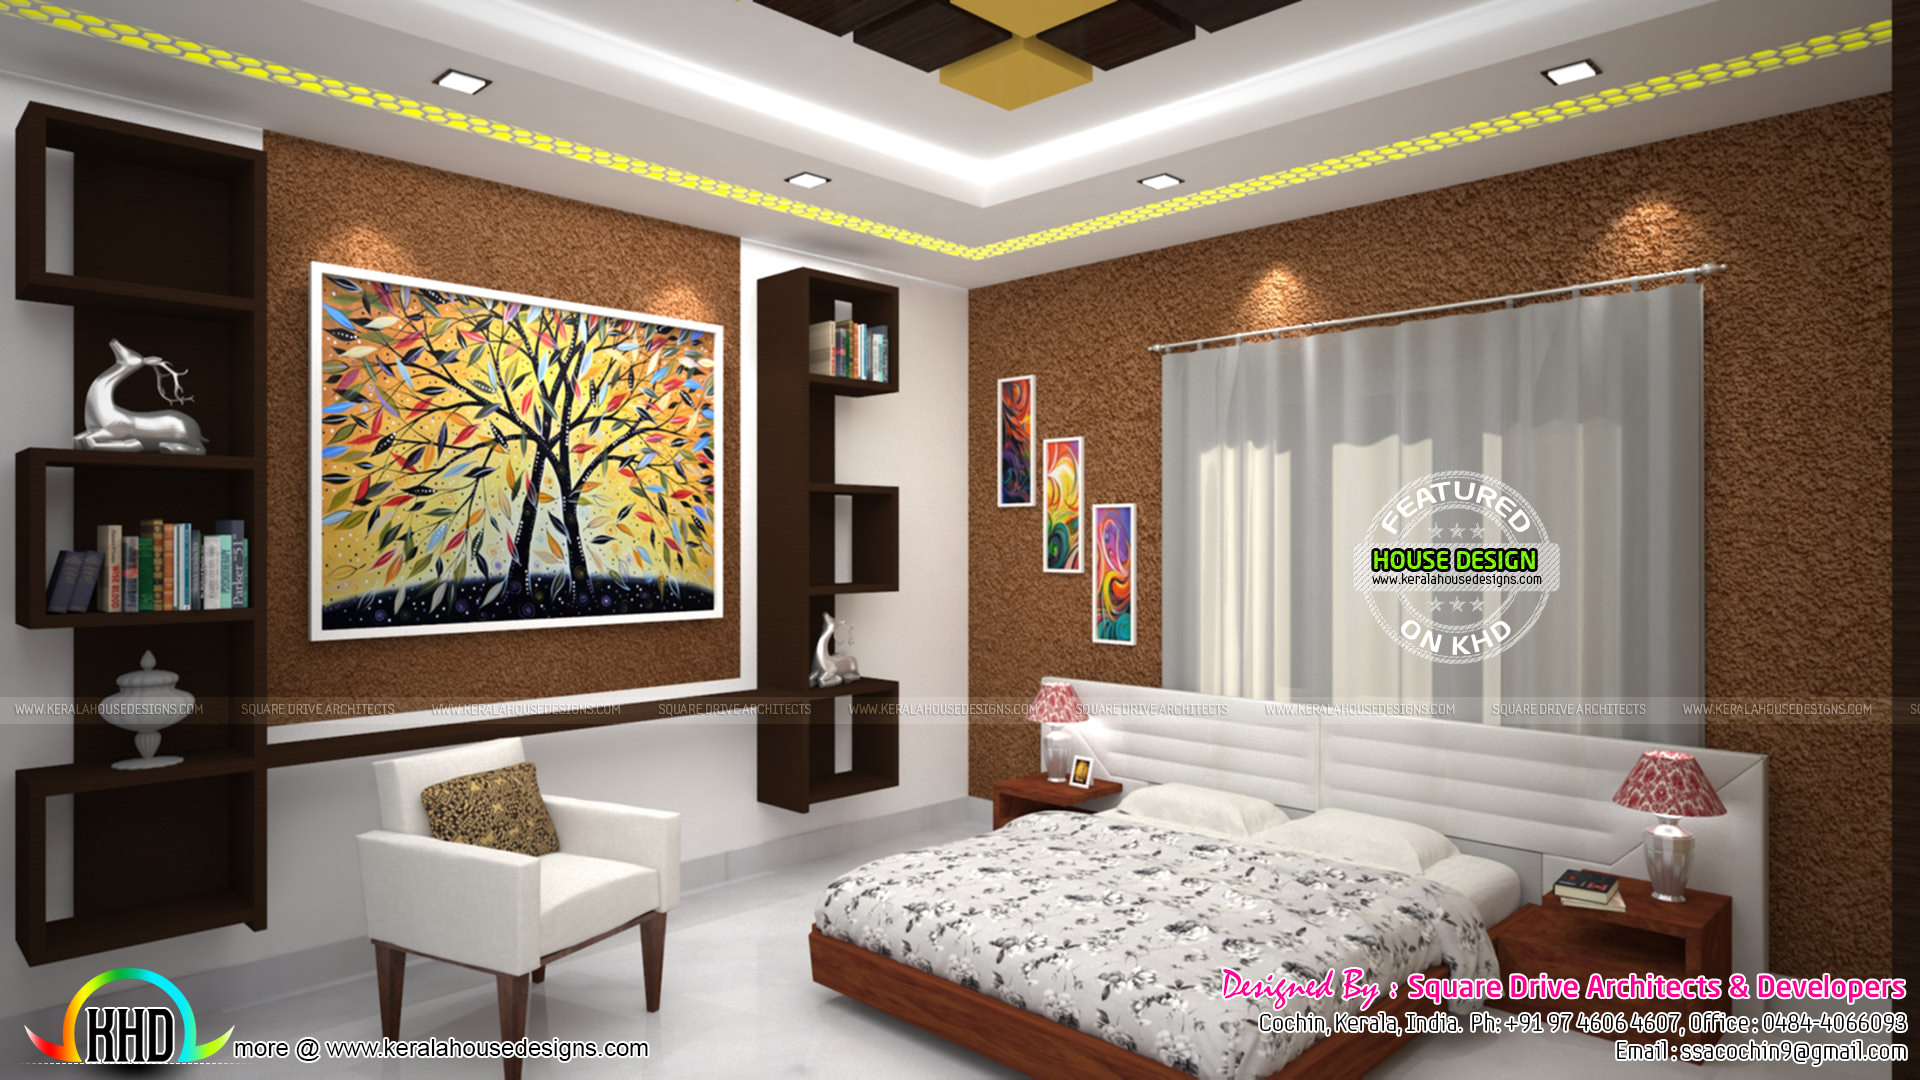 Master bedroom living and wardrobe designs kerala home for Master bedroom wardrobe designs india